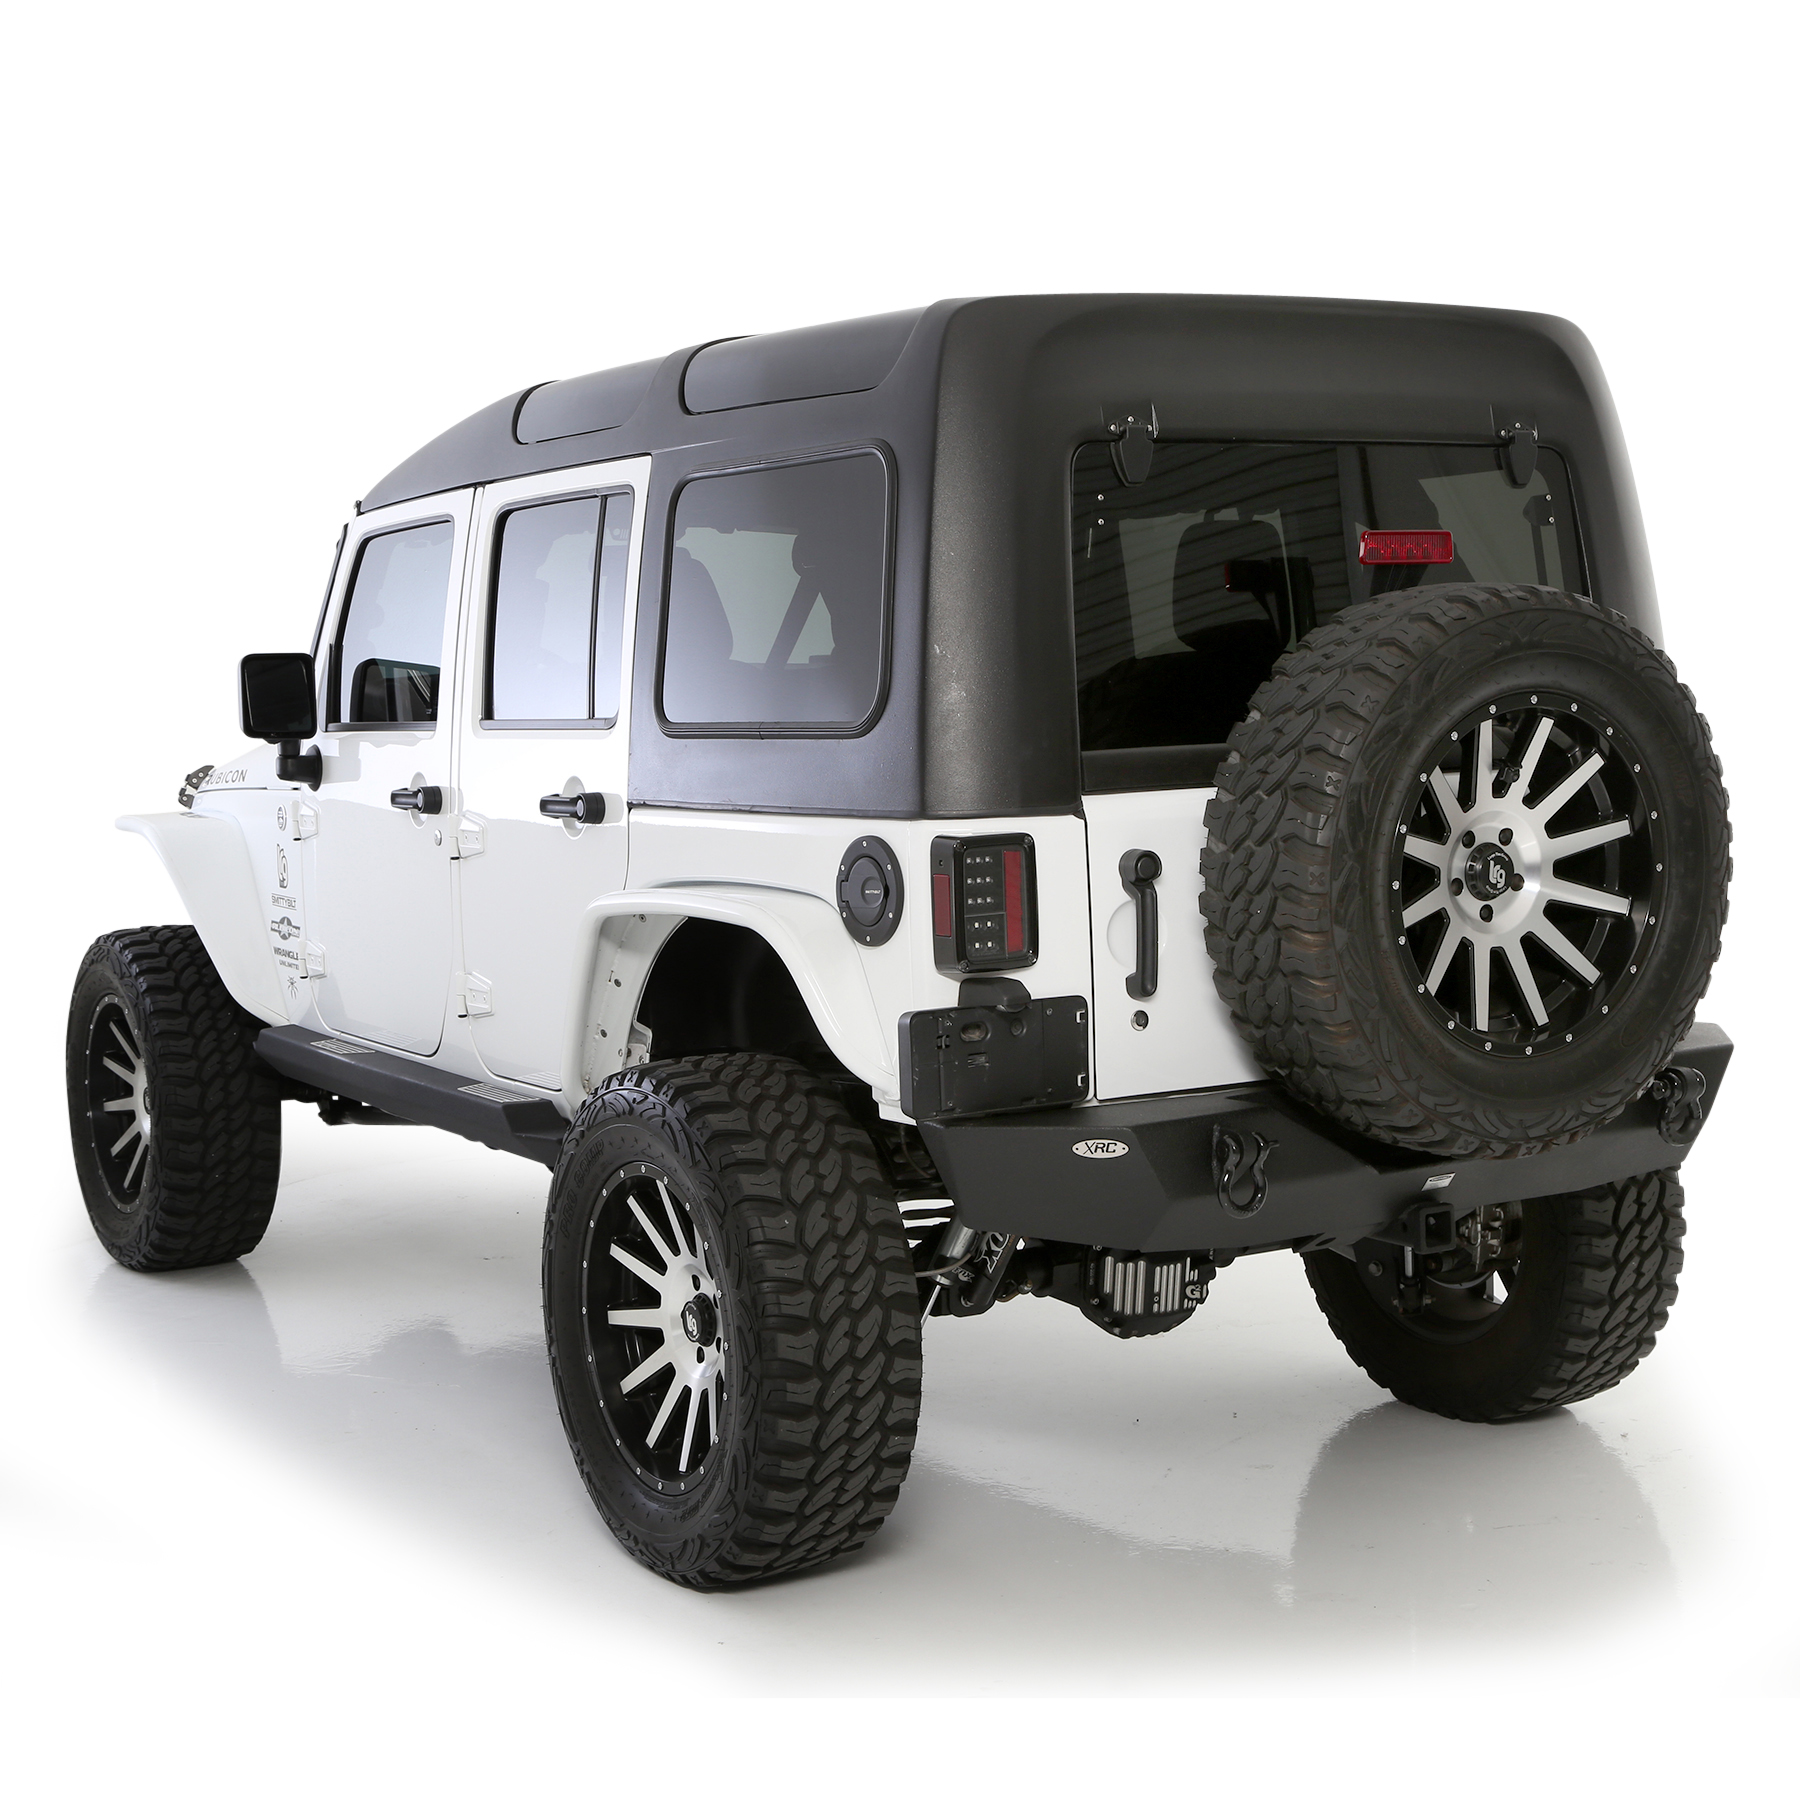 Smittybilt 518702 Safari Hard Top